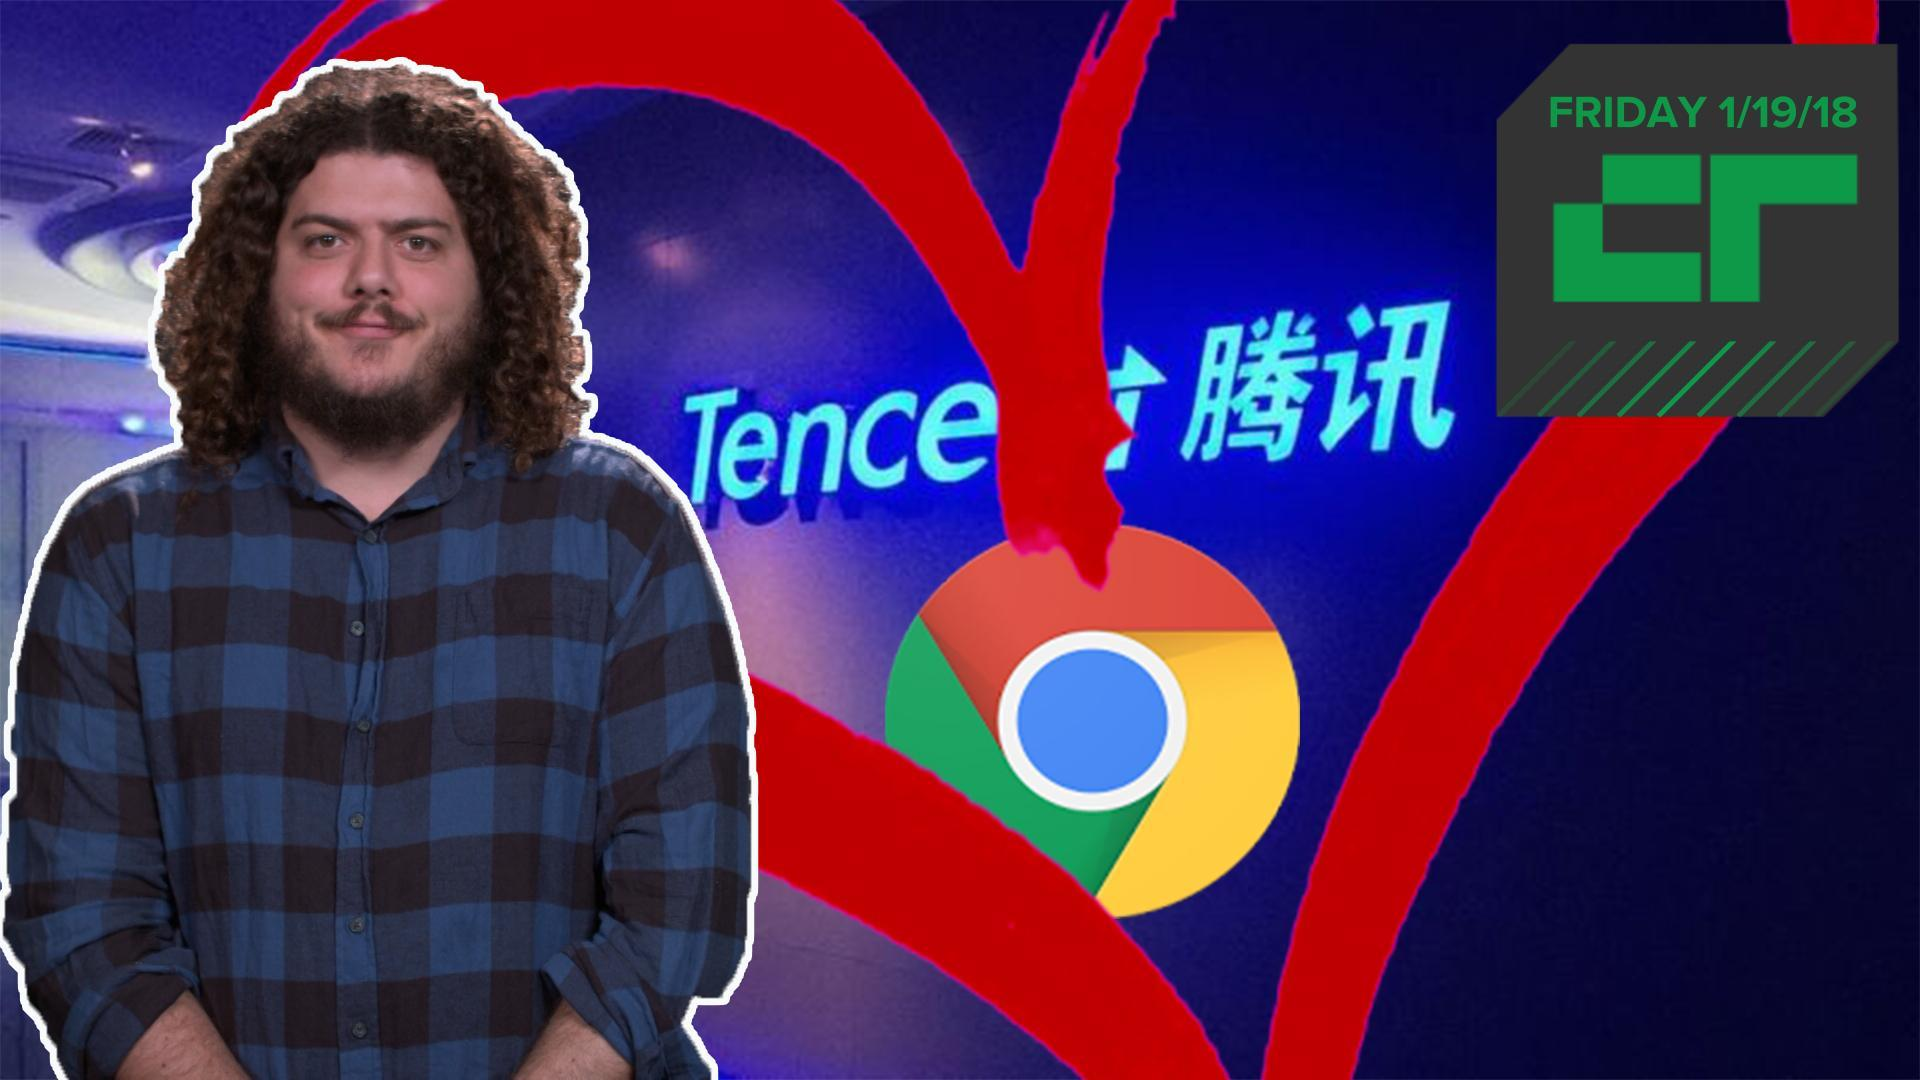 Google and Tencent ink patent agreement | Crunch Report